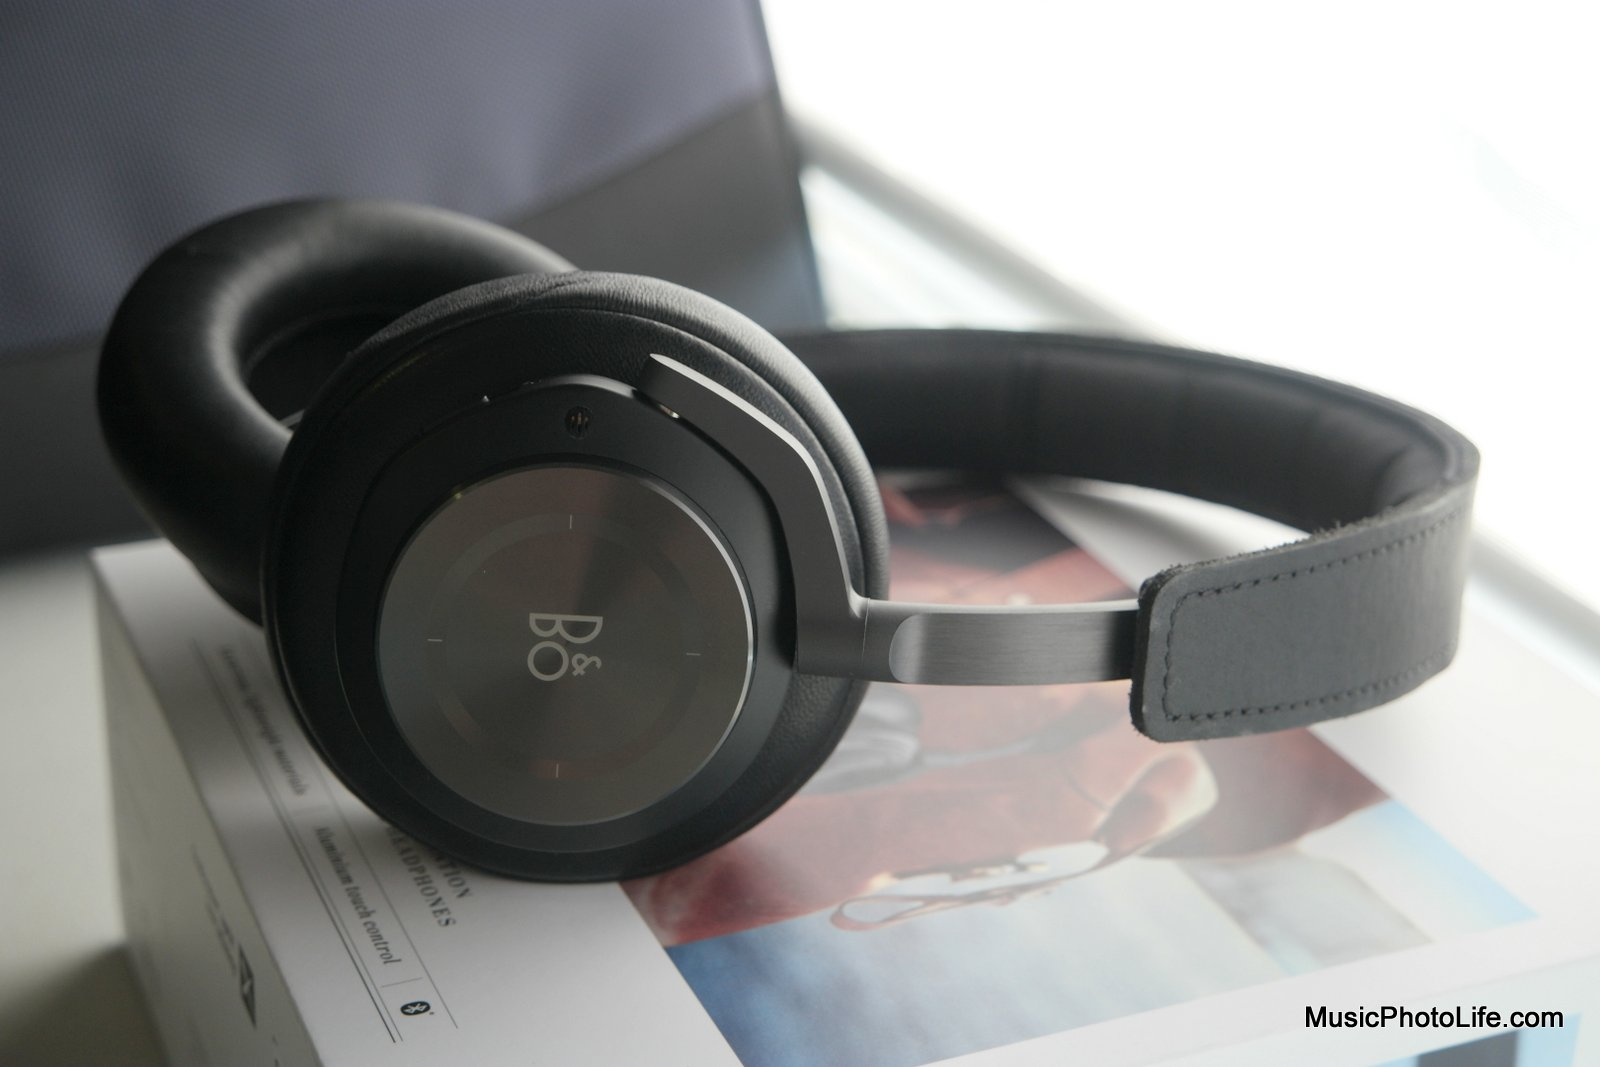 B&O PLAY Beoplay H9 review by musicphotolife.com